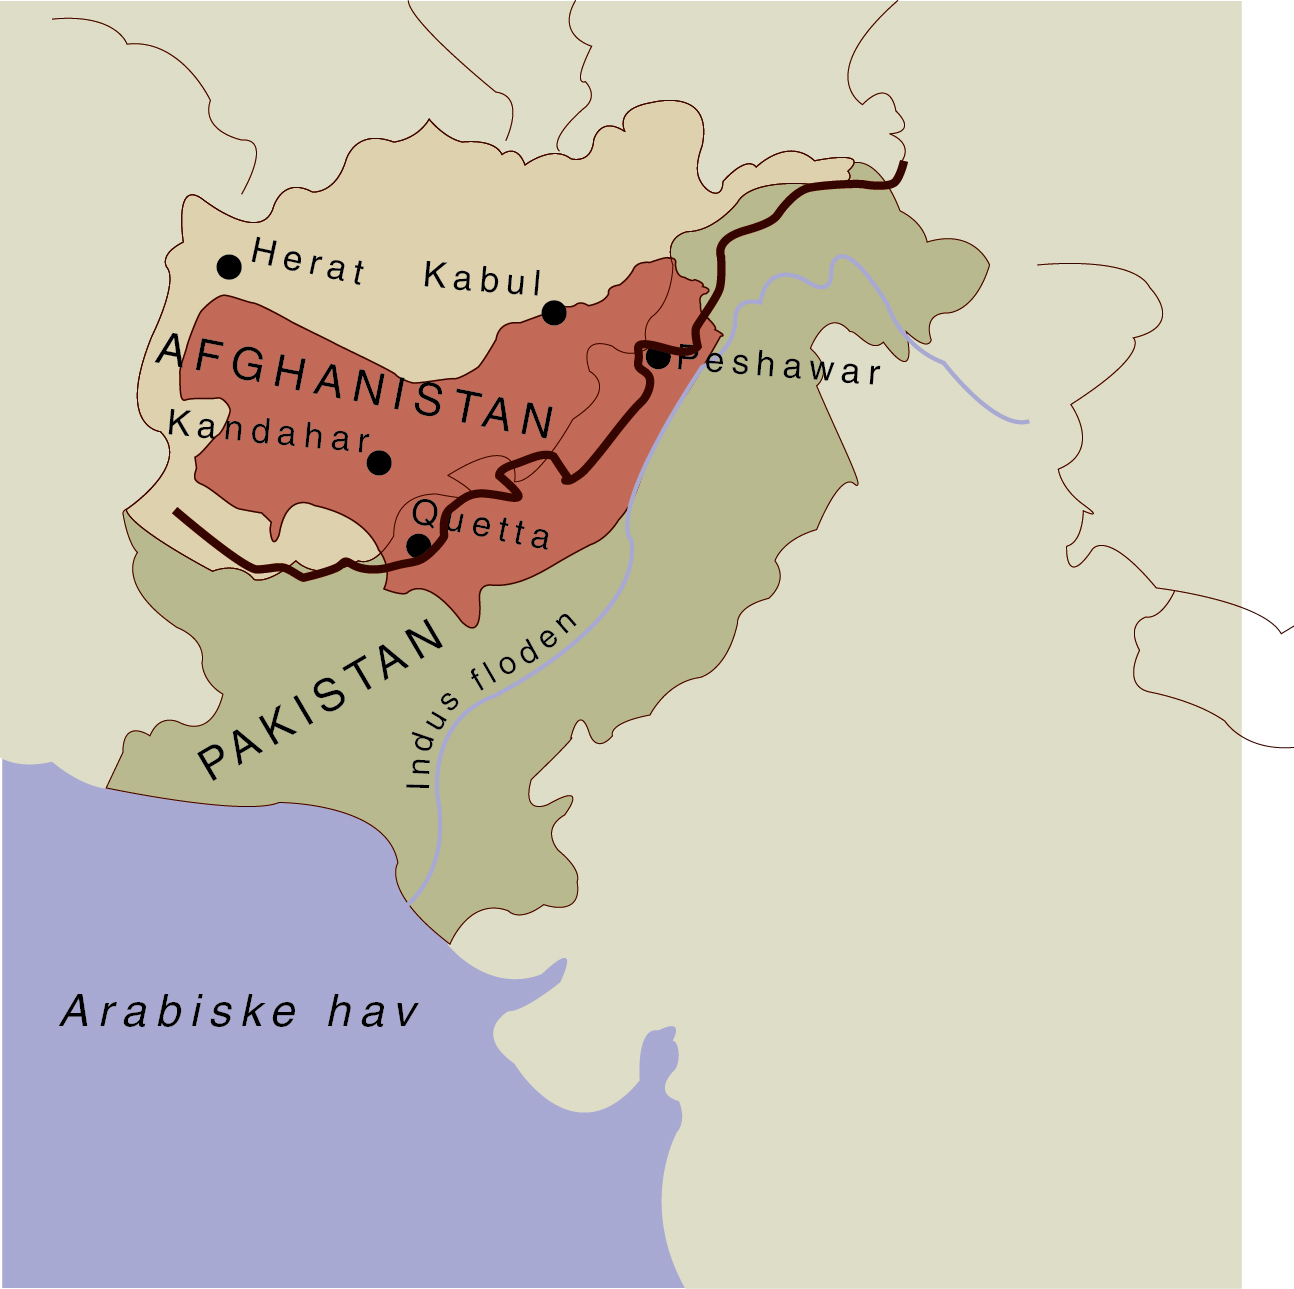 The border between Pakistan and Afghanistan cuts right across the Pashtun tribal area (shown in red). The antagonism between Pakistan and Afghanistan has repeatedly led Pakistan to close their shared border. Map by Moesgaard Museum